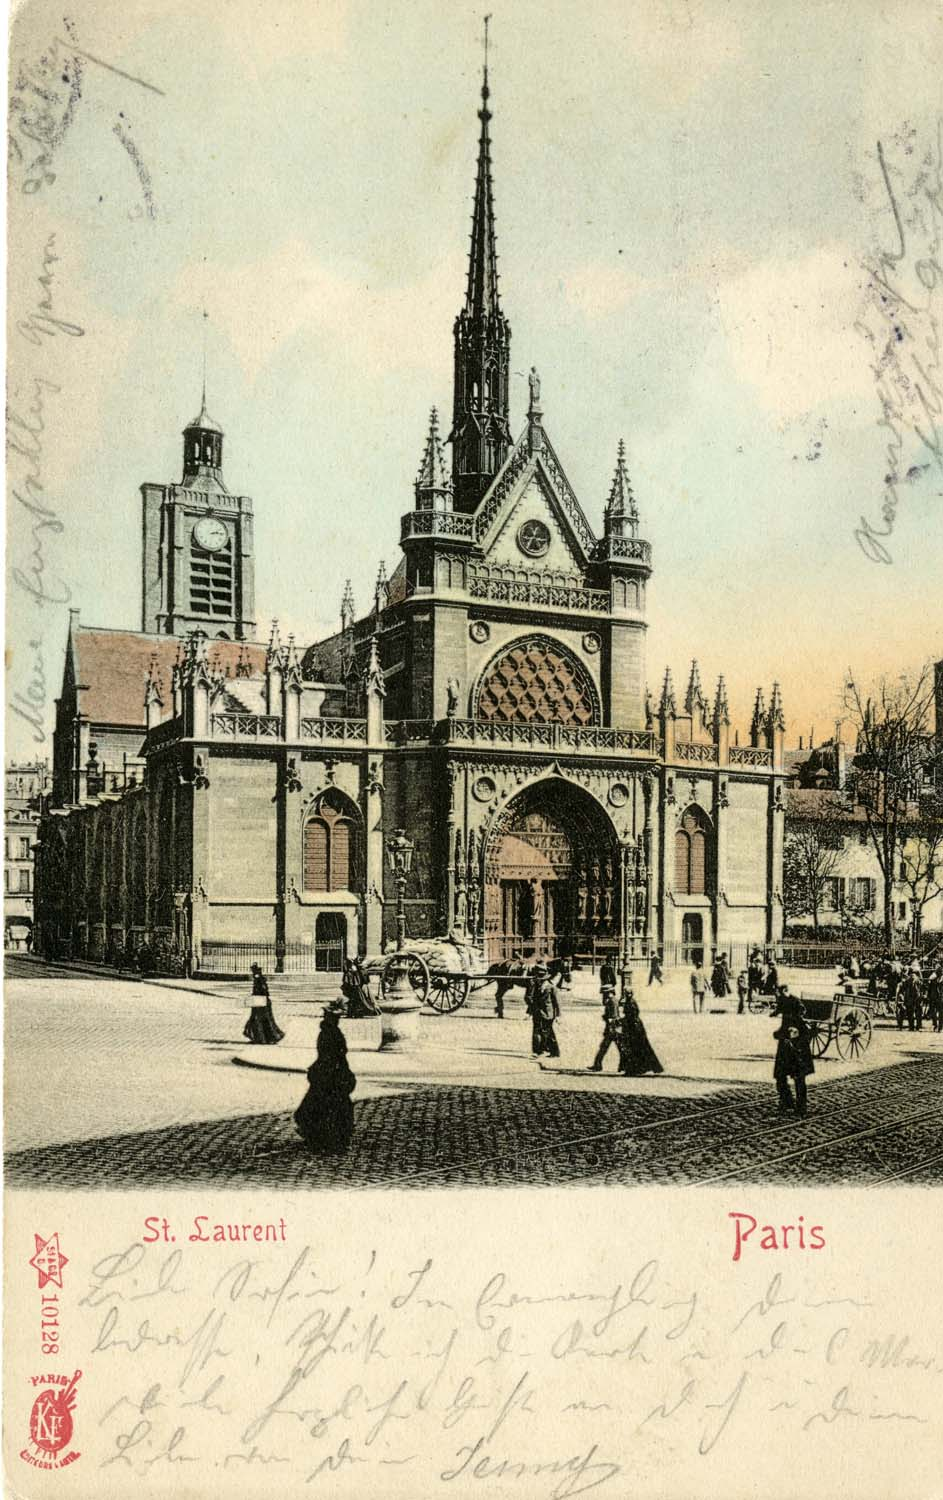 Postcards featuring exterior views of the façade of Saint-Laurent,  notable in particular for capturing the day-to-day street life of Parisians.